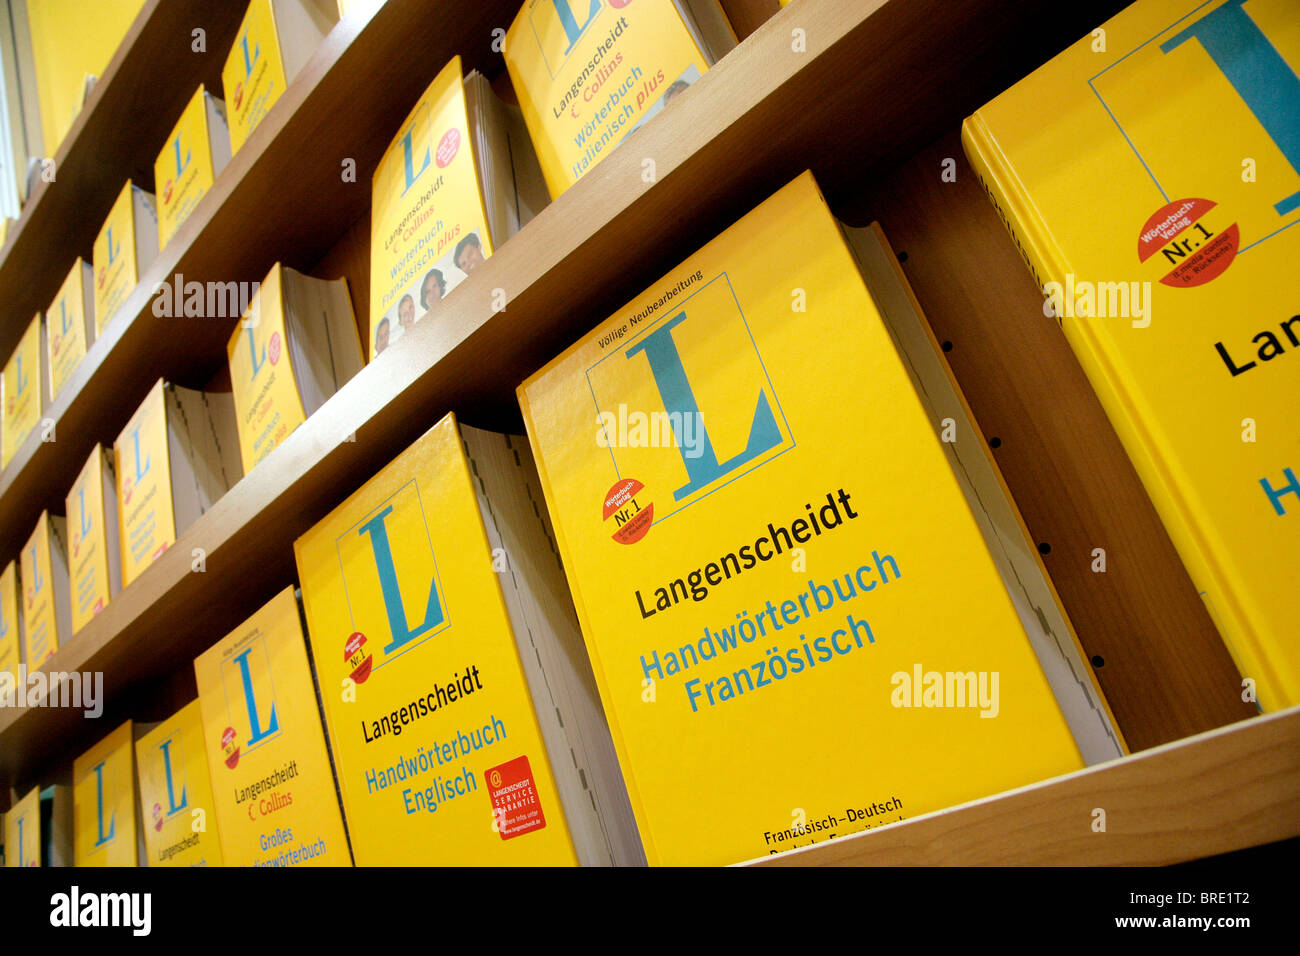 Langenscheidt dictionaries published by the publishing company Langenscheidt KG at the Frankfurter Buchmesse 2007 - Stock Image